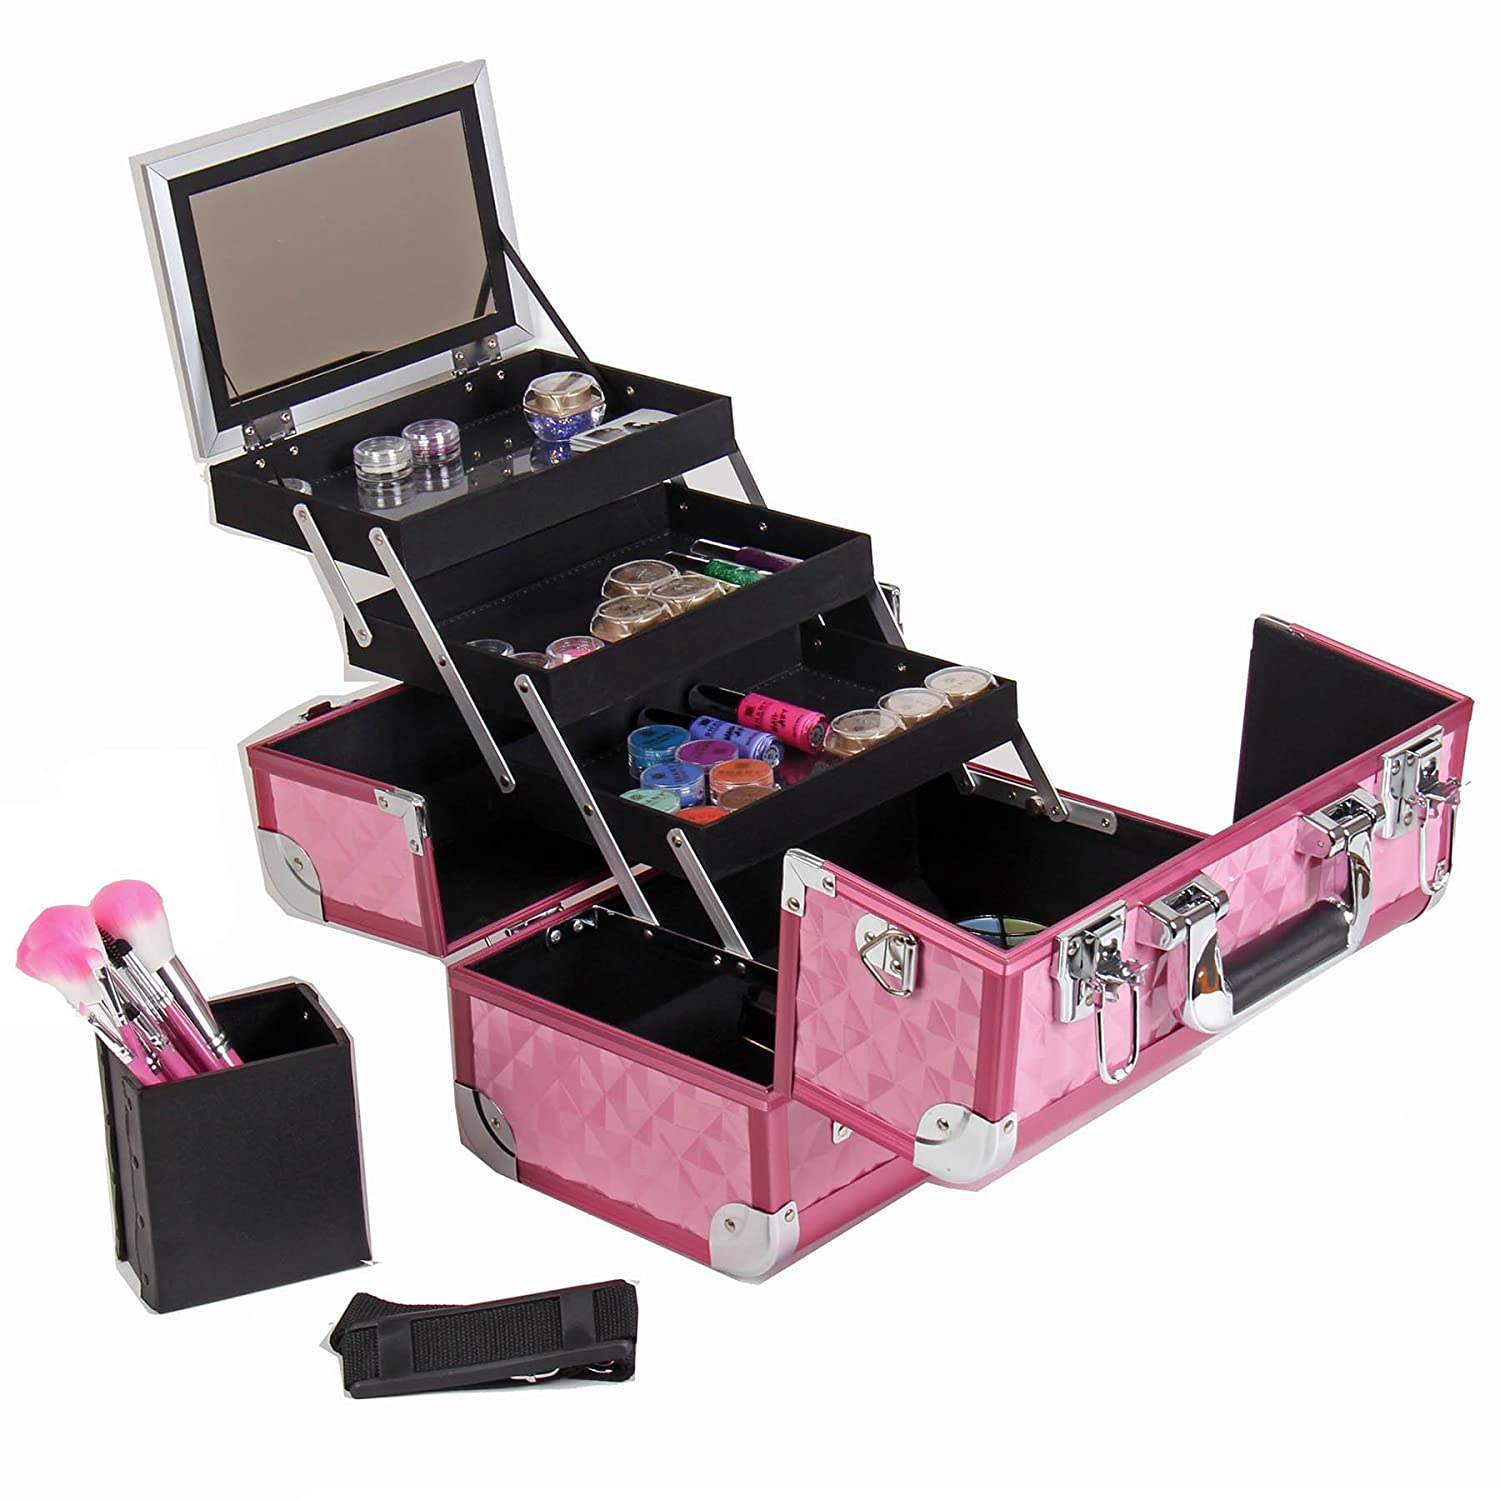 Professional and original makeup case in pink gold colour